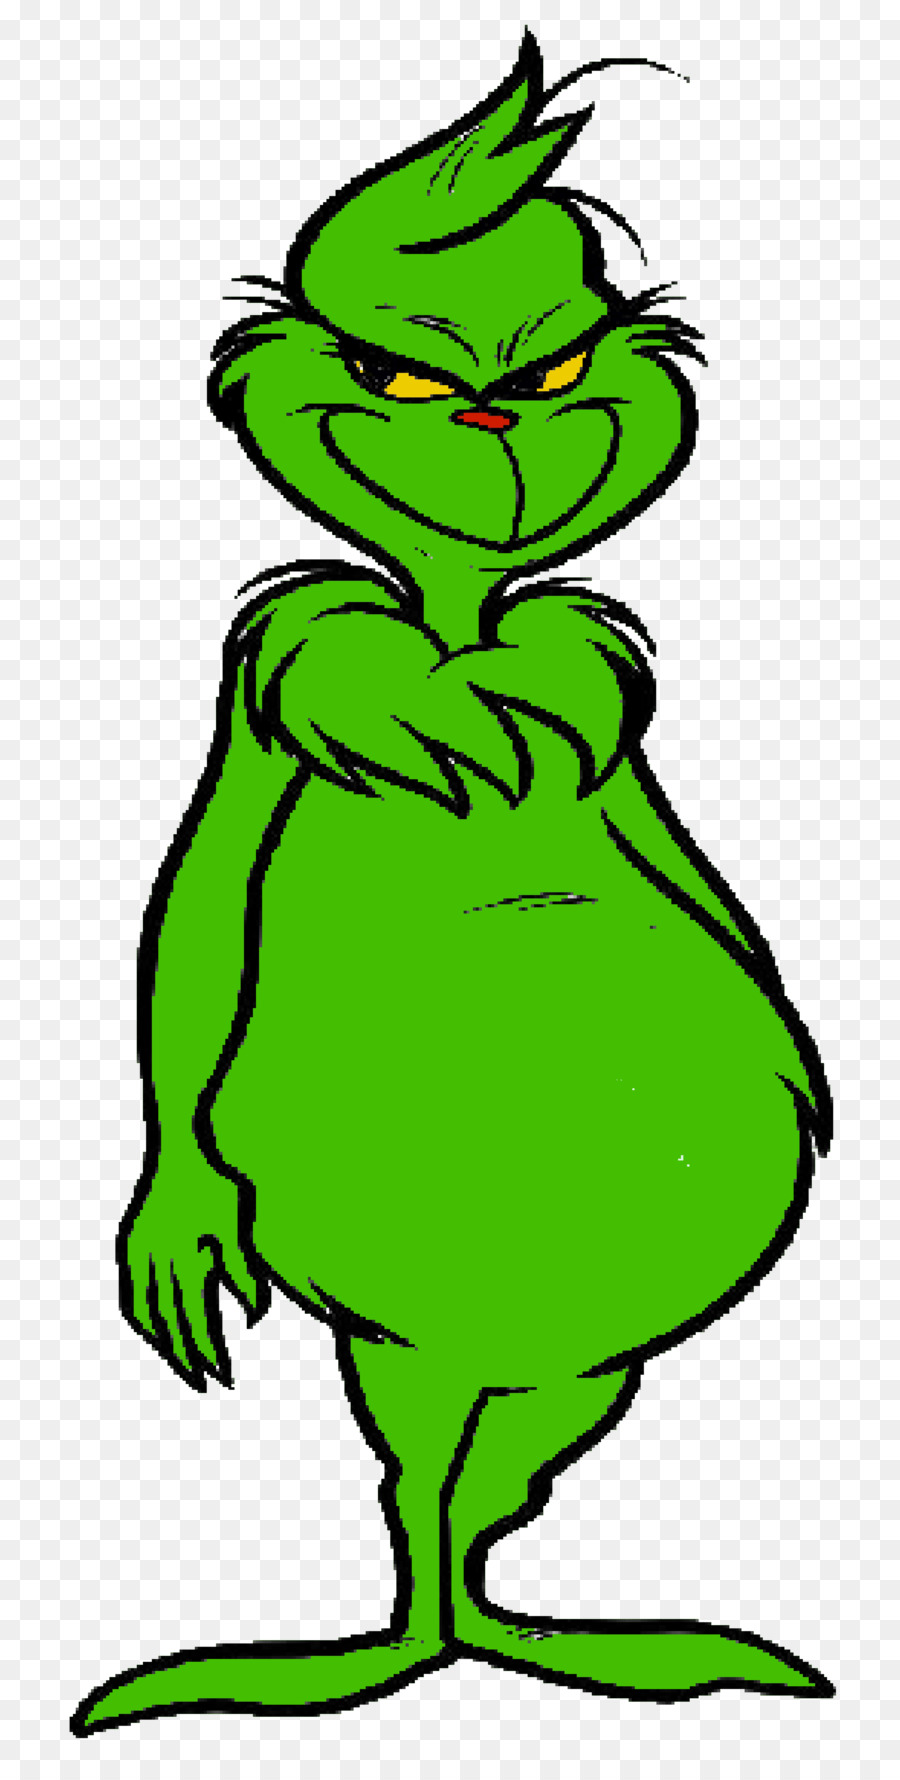 The Grinch Christmas Tree Png Download 3224 6324 Free Transparent How The Grinch Stole Christmas Png Download Cleanpng Kisspng